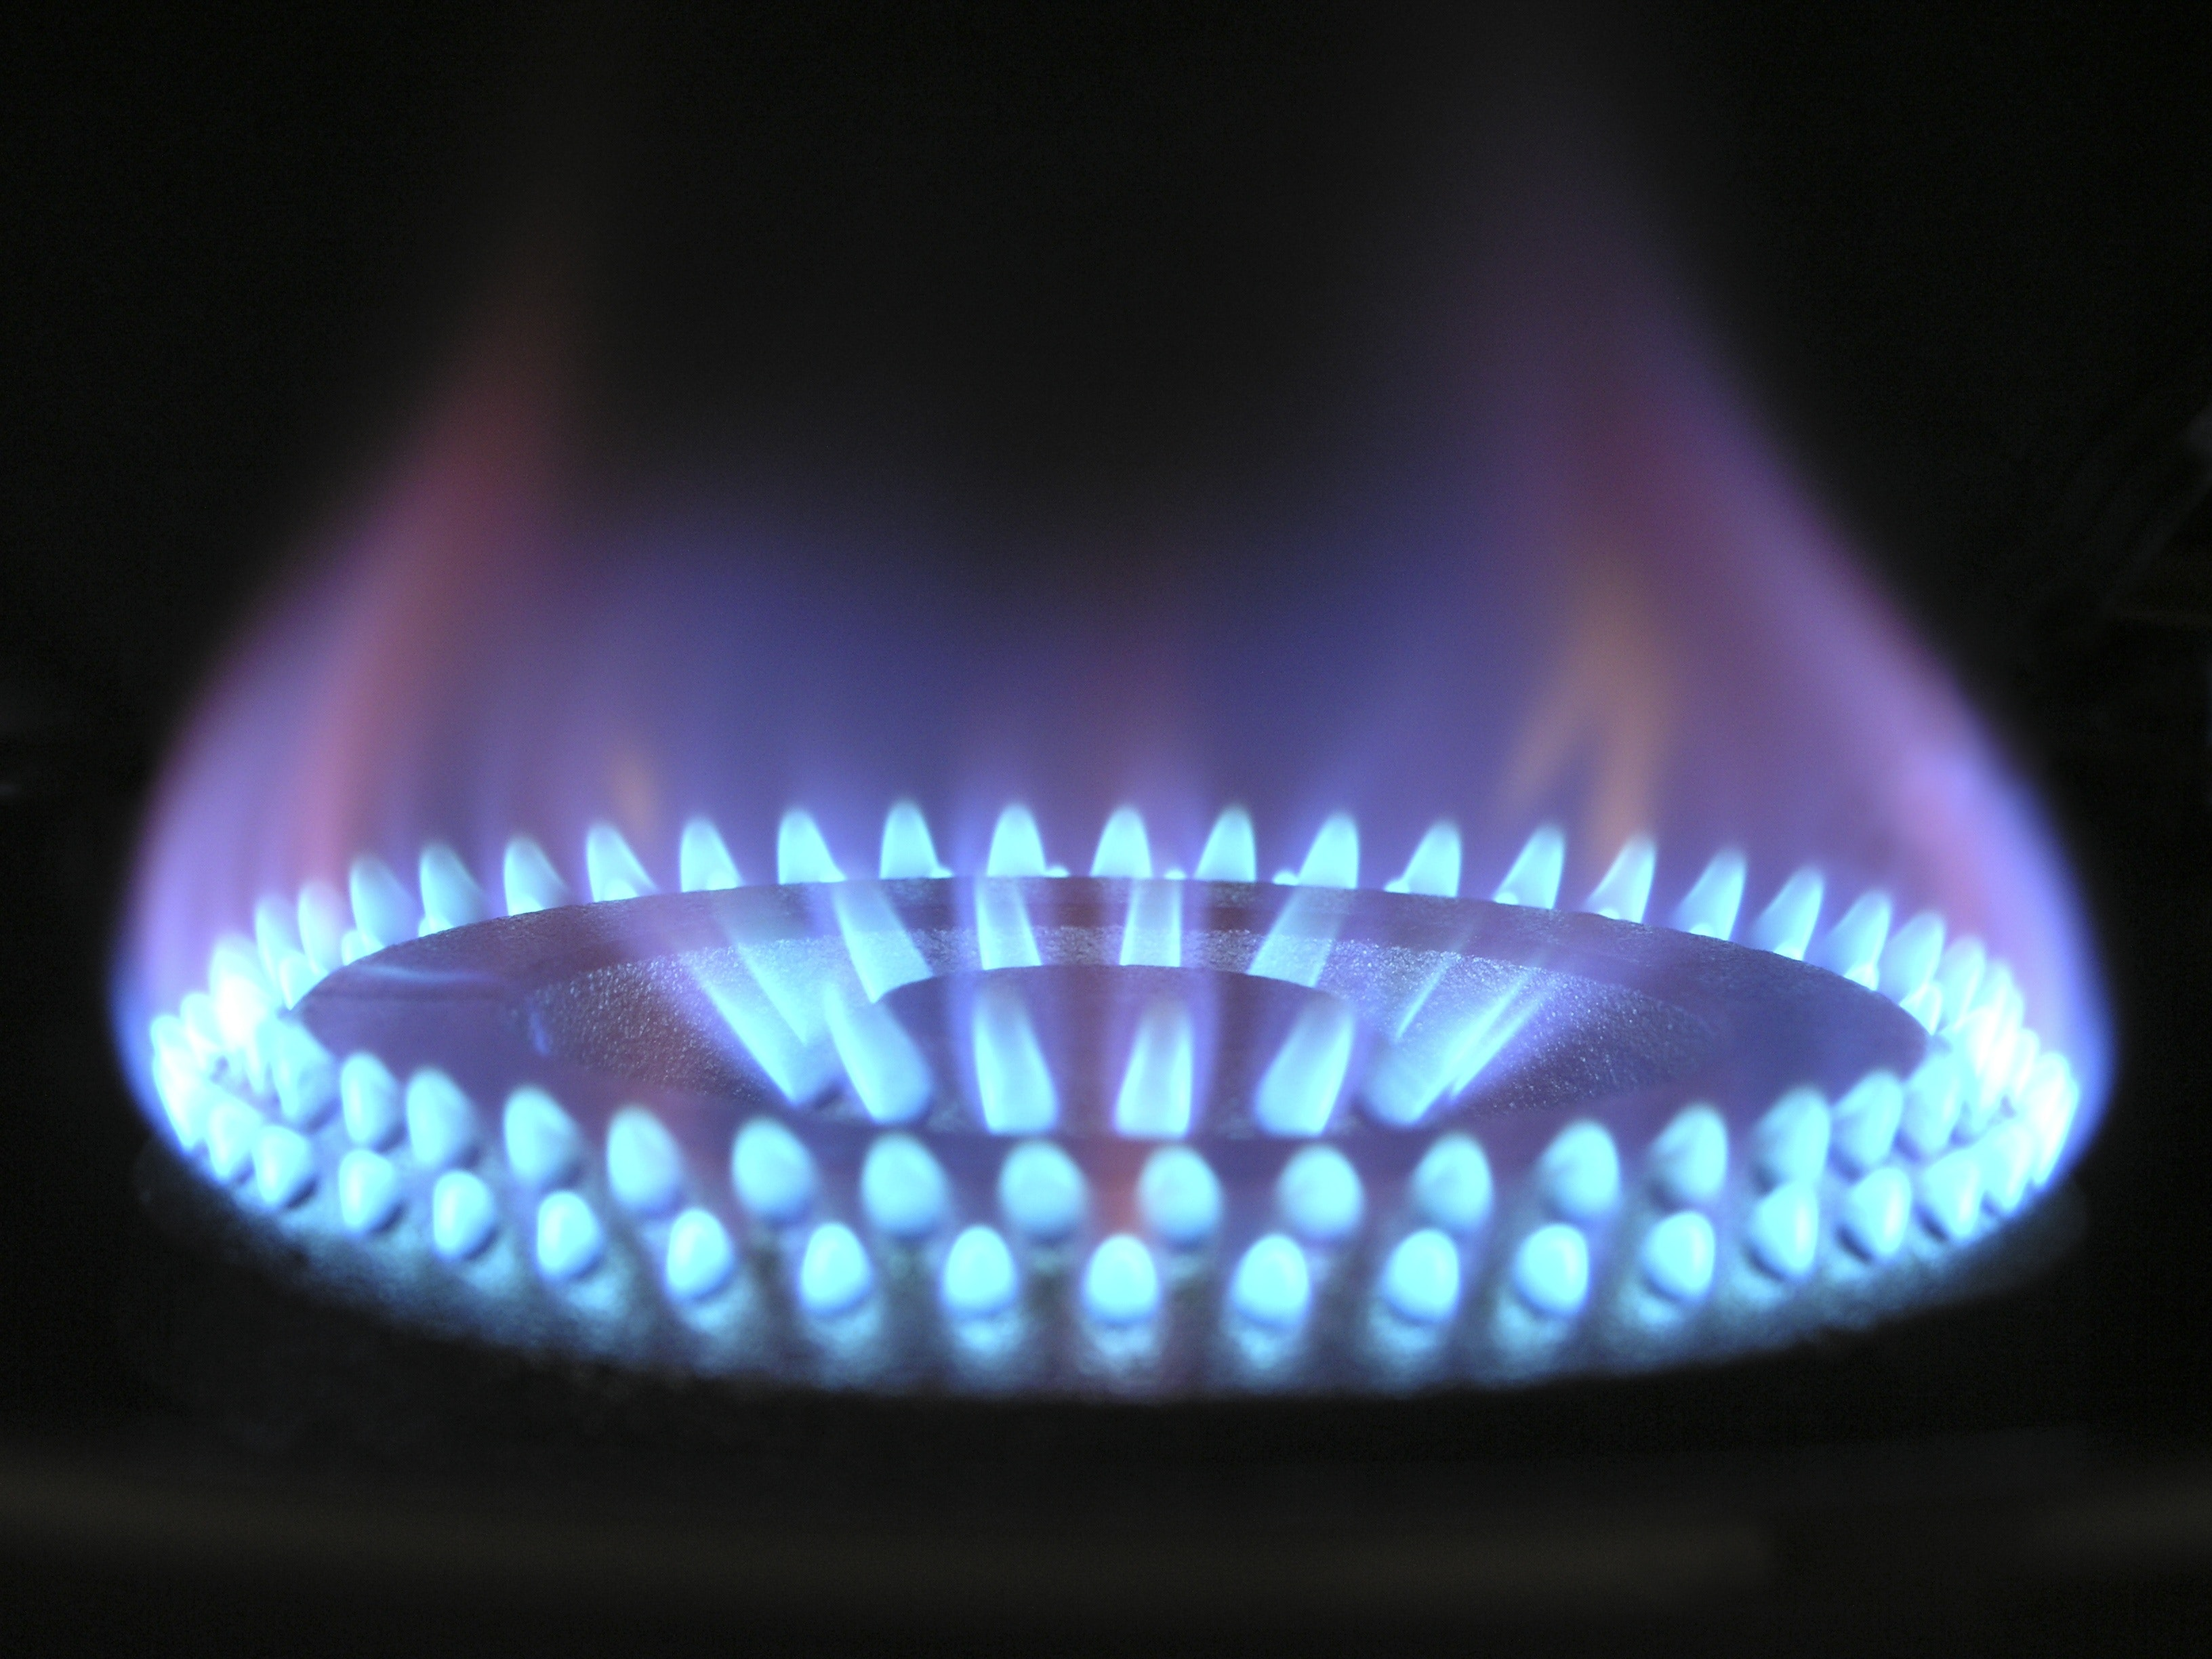 Will the National COVID-19 Coordination Commission focus on social issues: image of gas flame